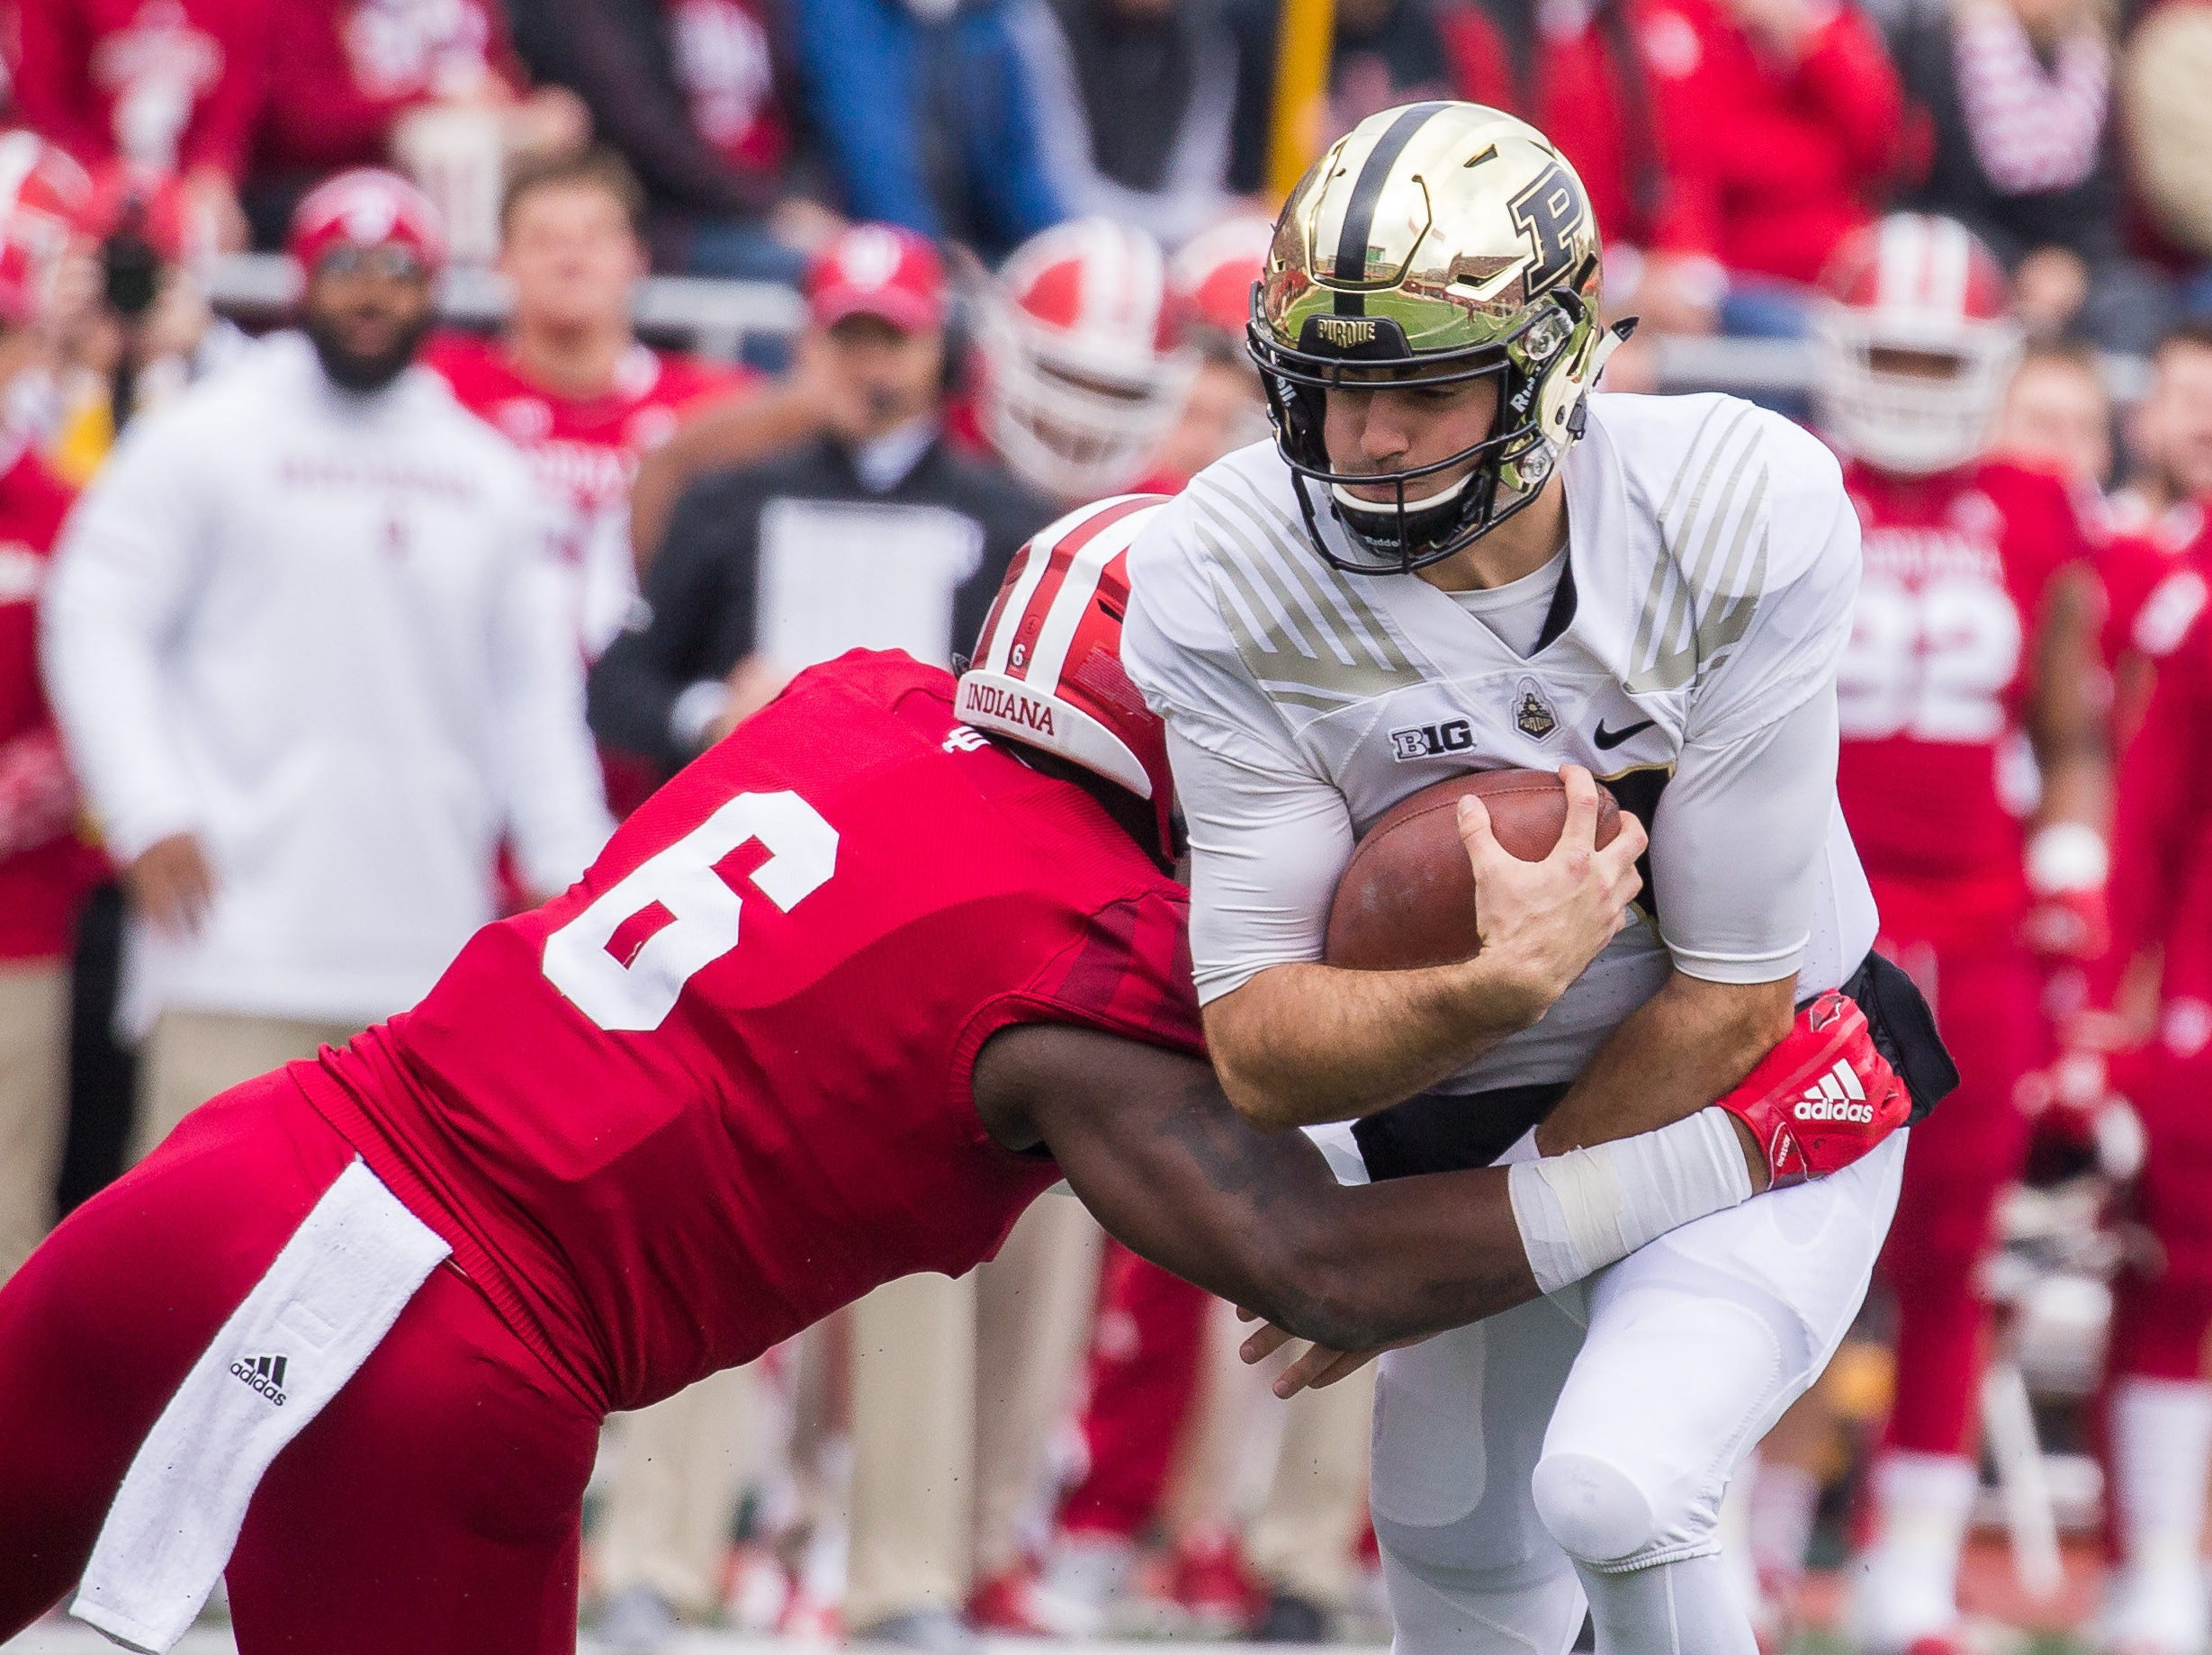 Nov 24, 2018; Bloomington, IN, USA; Purdue Boilermakers quarterback David Blough (11) is tackled by Indiana Hoosiers defensive lineman James Head Jr. (6) in the first quarter at Memorial Stadium. Mandatory Credit: Trevor Ruszkowski-USA TODAY Sports